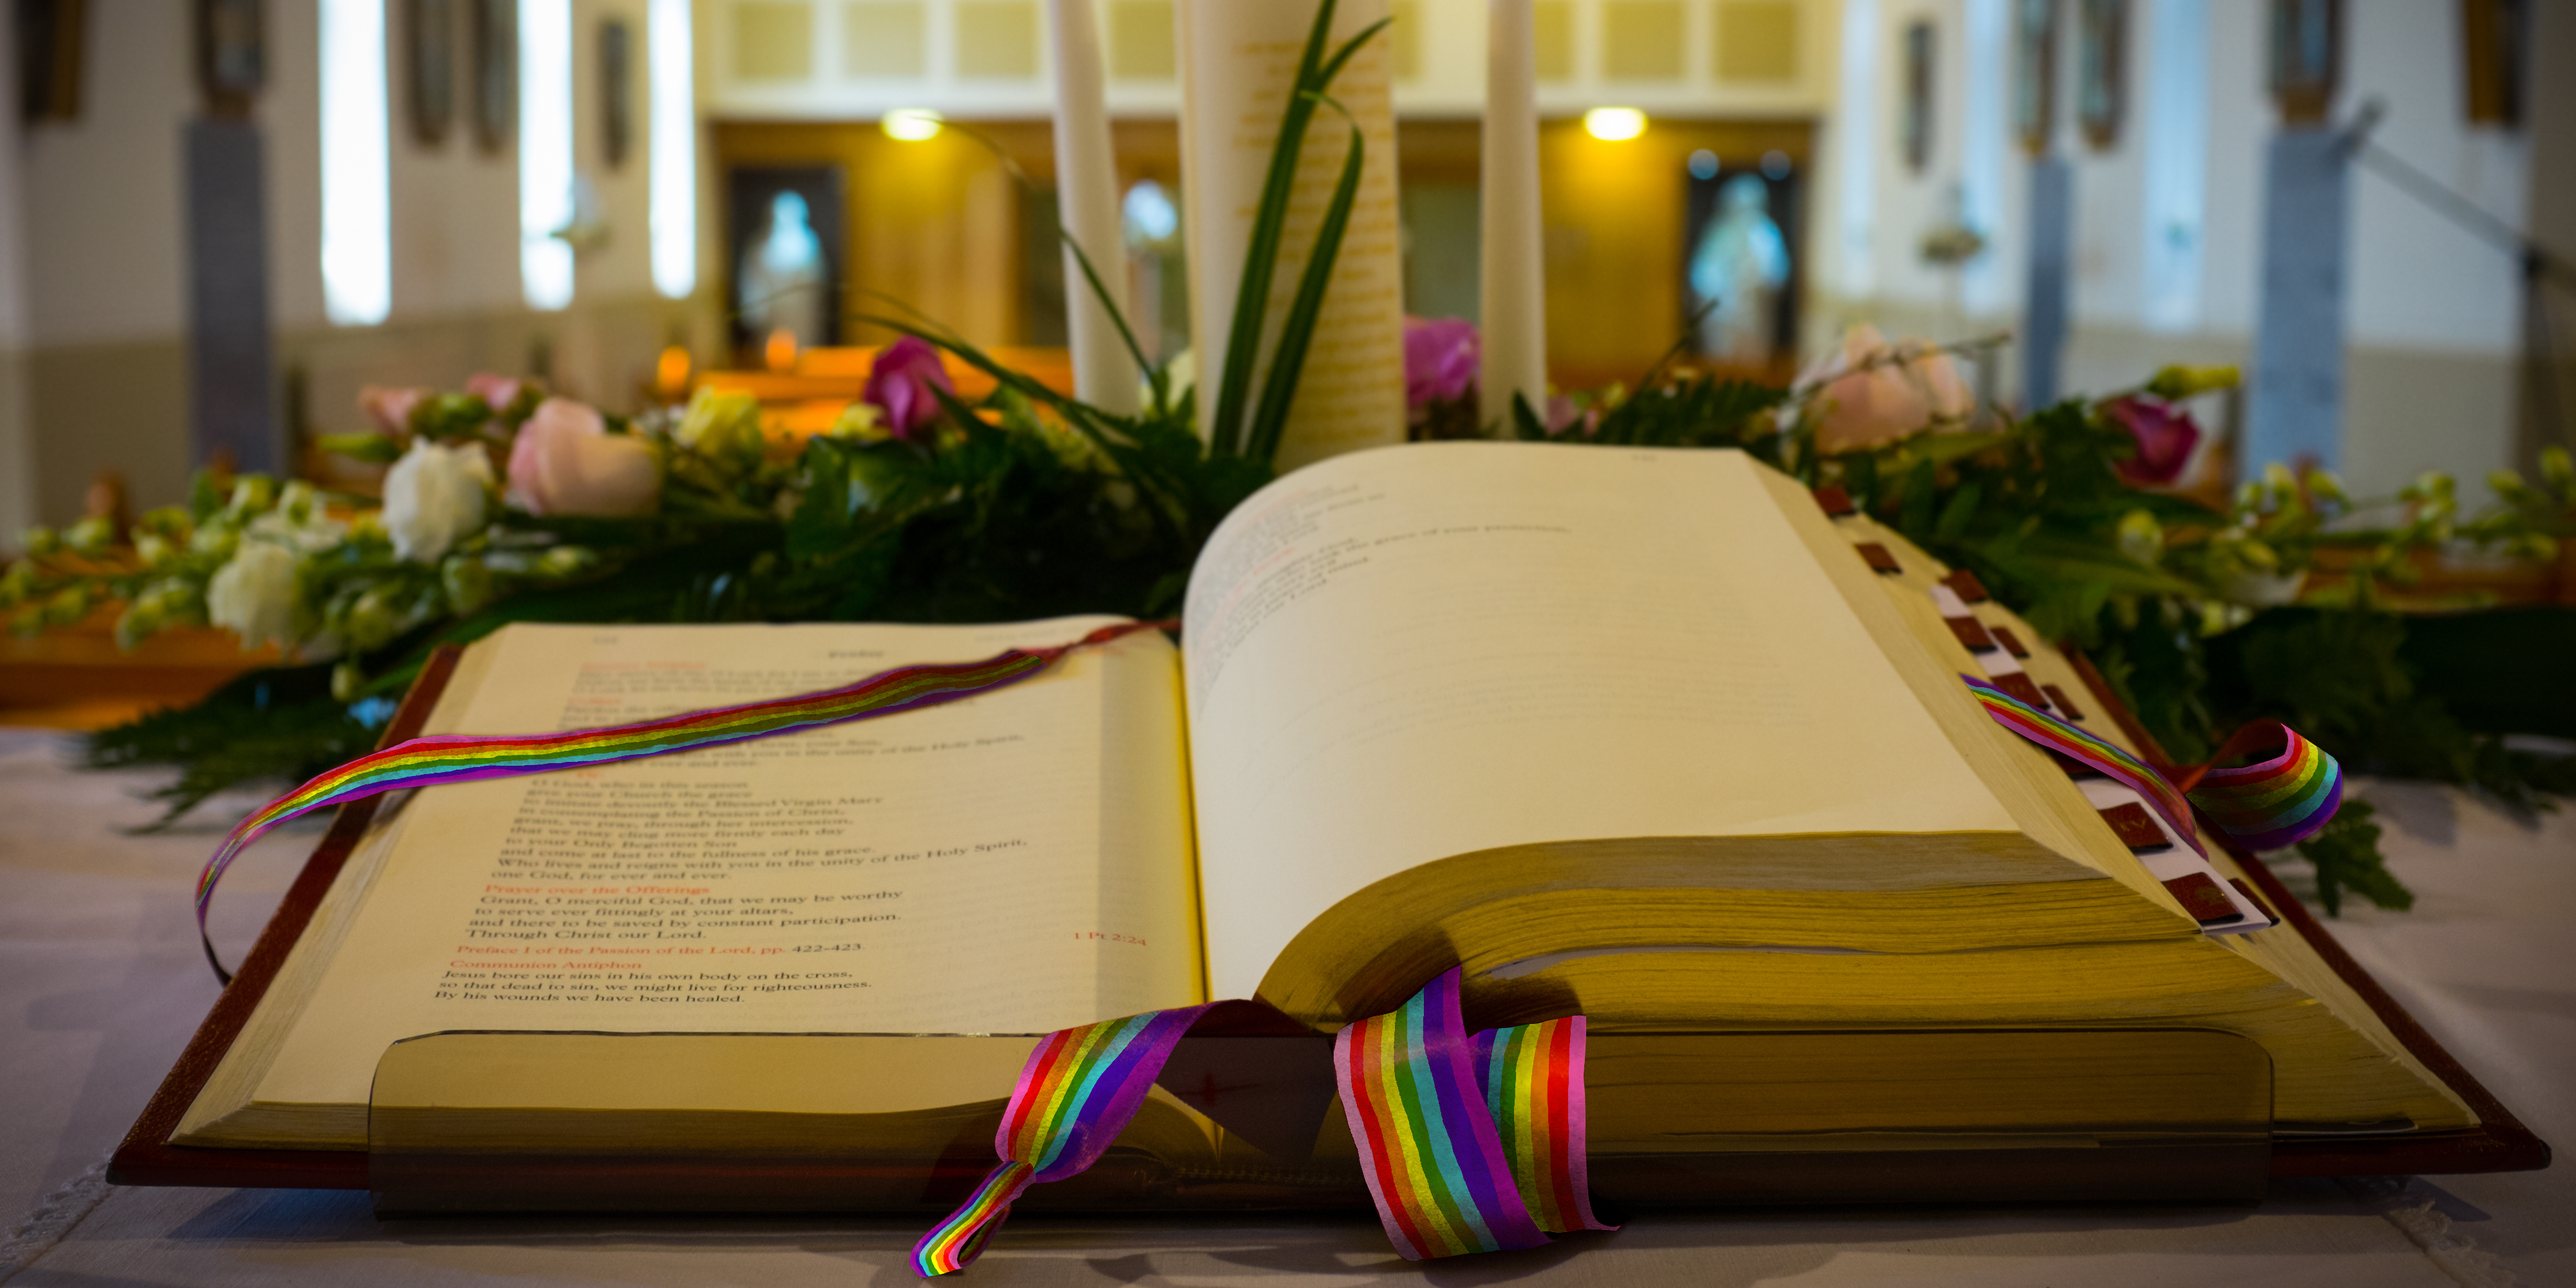 Universal house of justice homosexuality in christianity